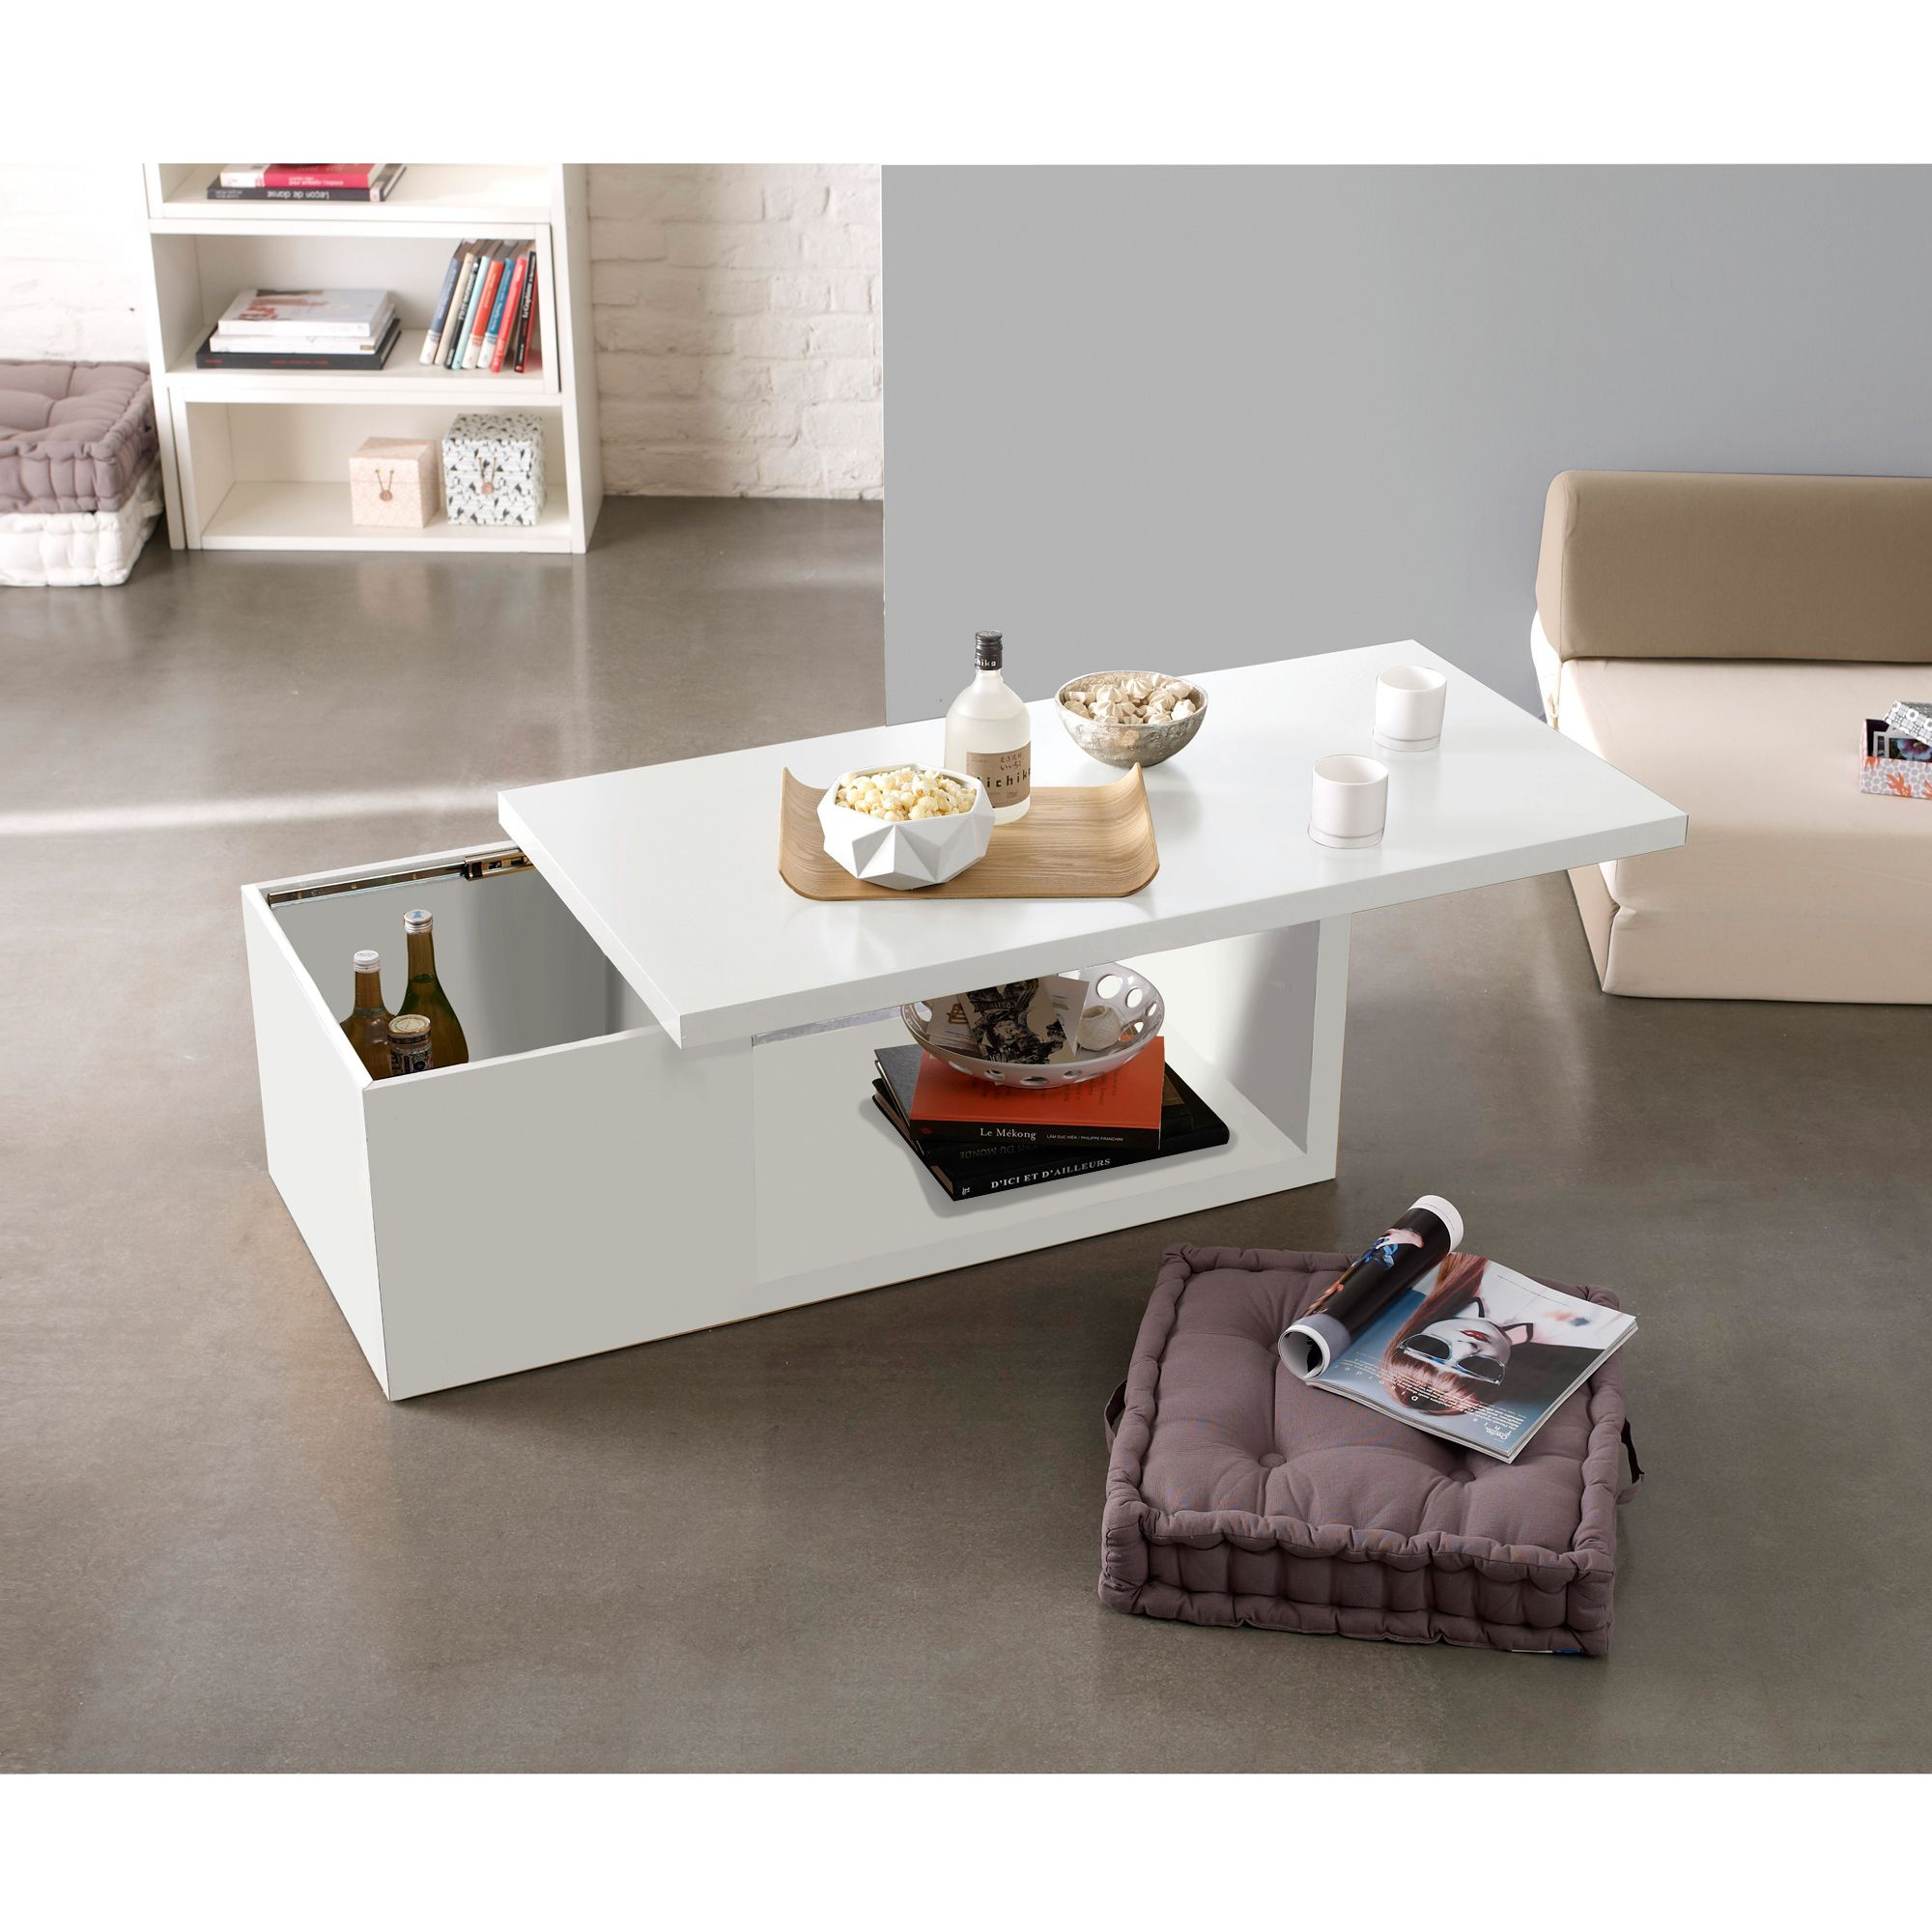 0a0d24dd11aac9e1d8d698a2b1fa5bd5 Luxe De Table Basse Palette